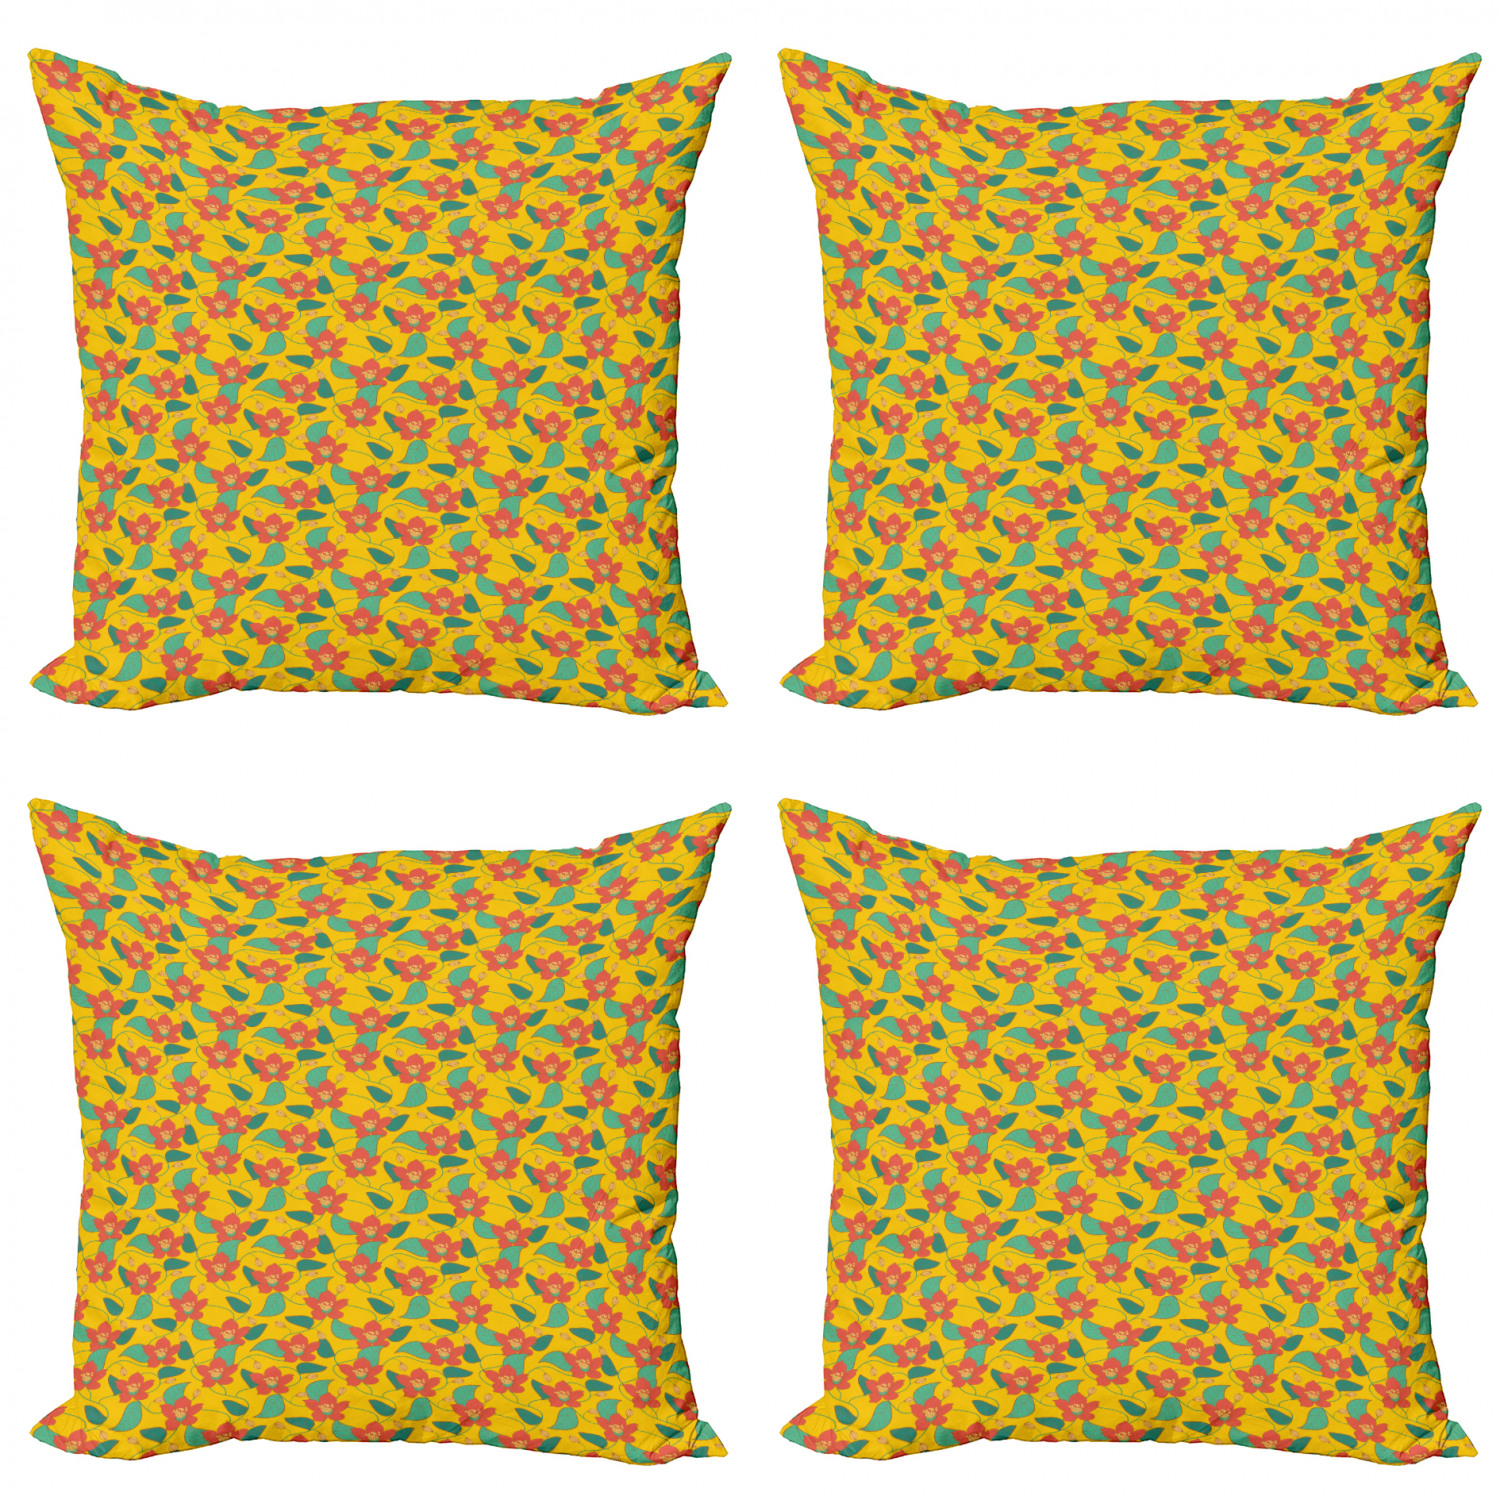 Ambesonne-Floral-Drawings-Cushion-Cover-Set-of-4-for-Couch-and-Bed-in-4-Sizes thumbnail 50